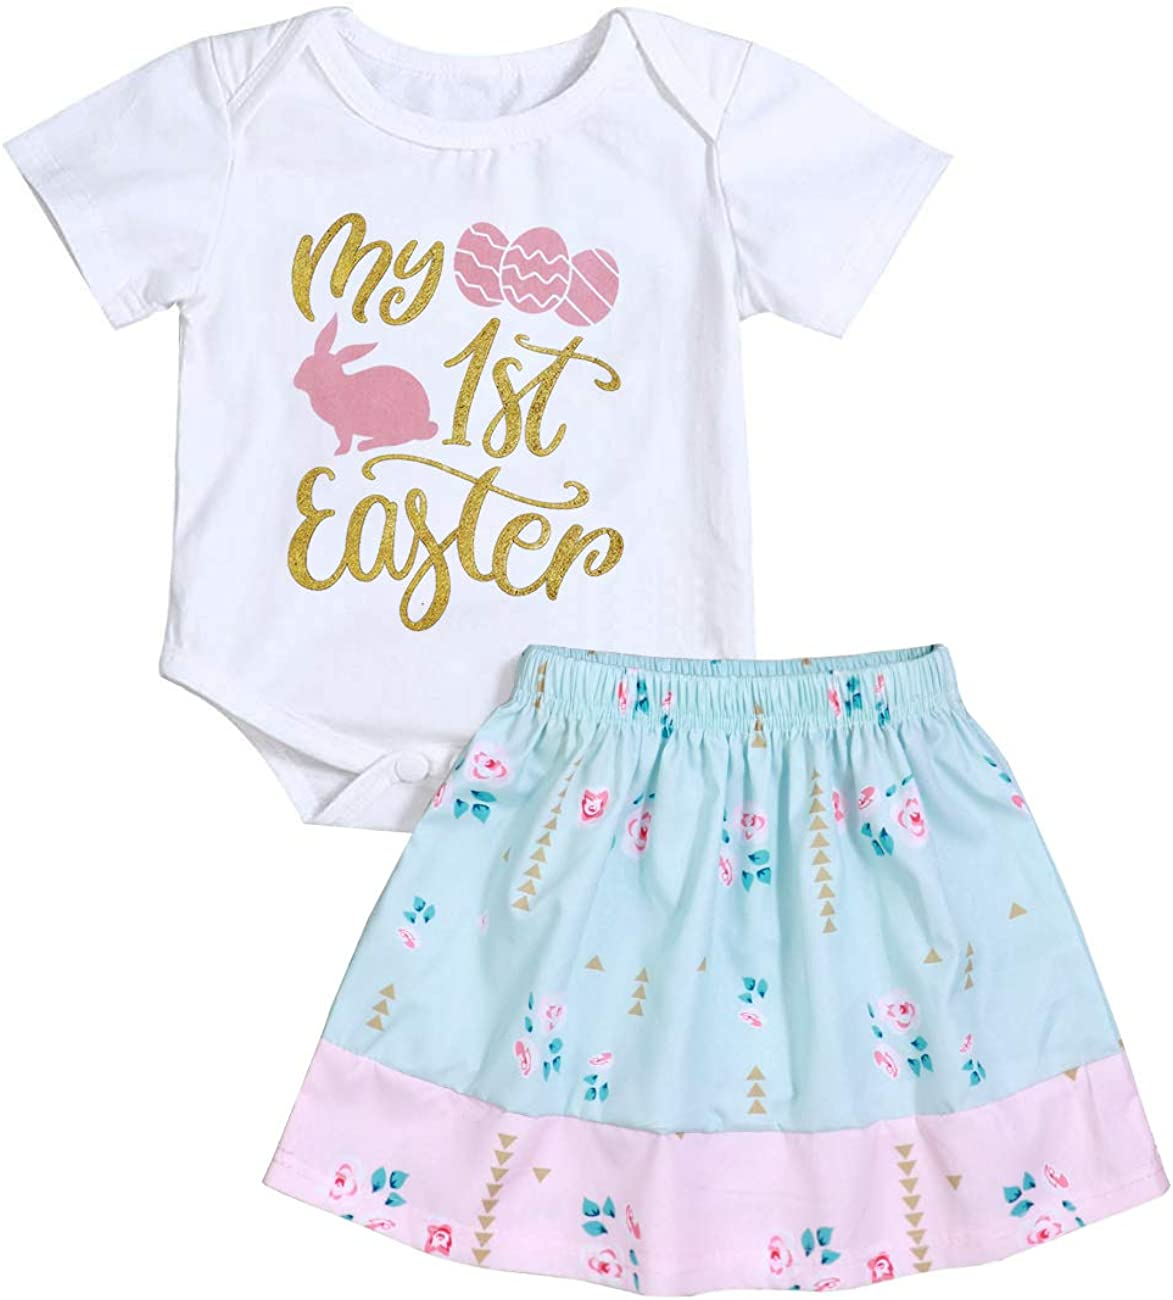 Floral Tutu Skirt 2pcs Clothing Set Newborn Infant Baby Girl My 1st Easter Outfit Bunny Print Romper Bodysuit